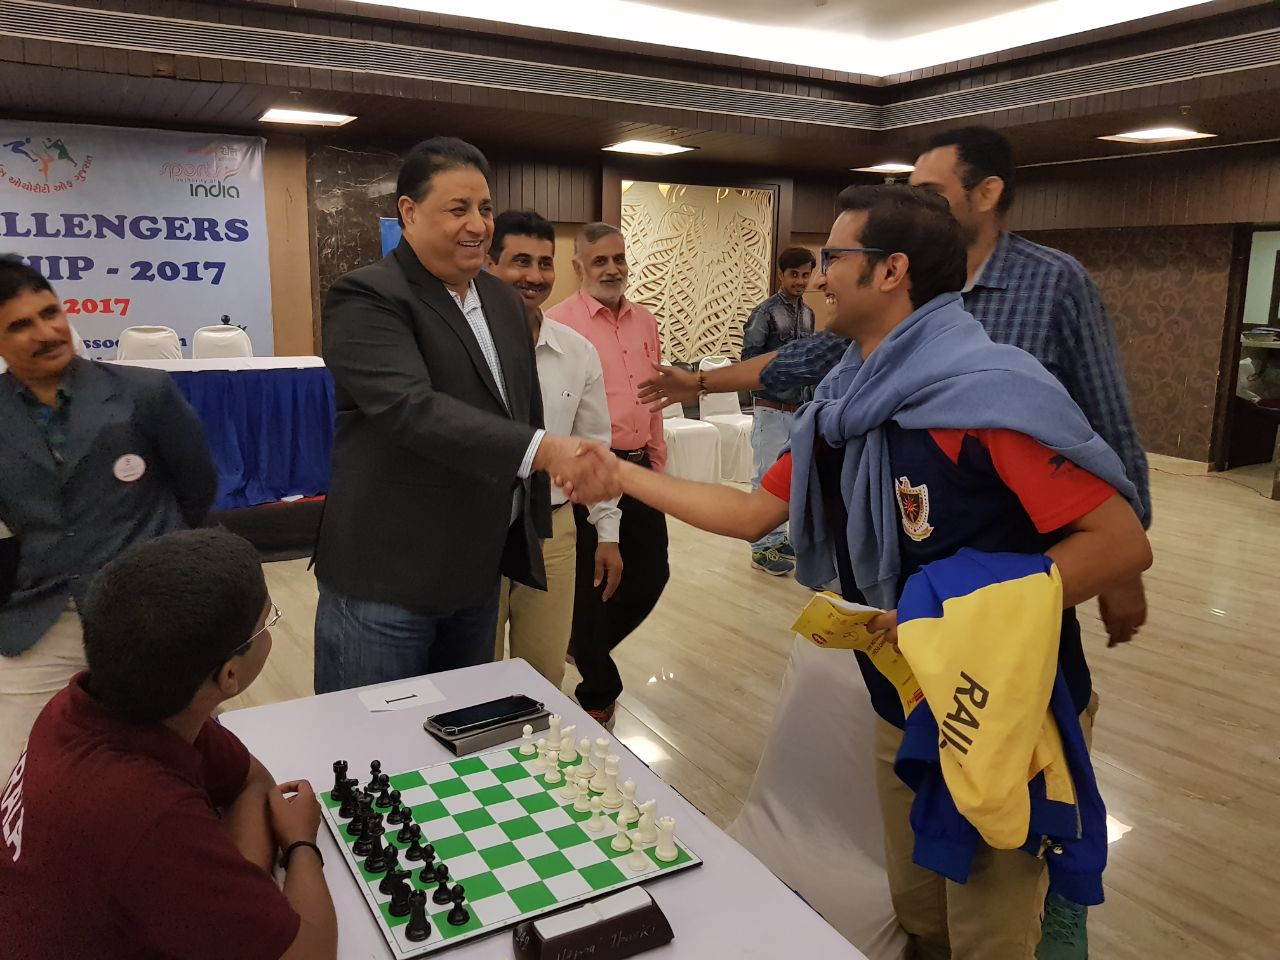 aicf-secretary-bharat-singh-shaking-hand-with-swapnil-dhopade-before-the-eighth-round-match